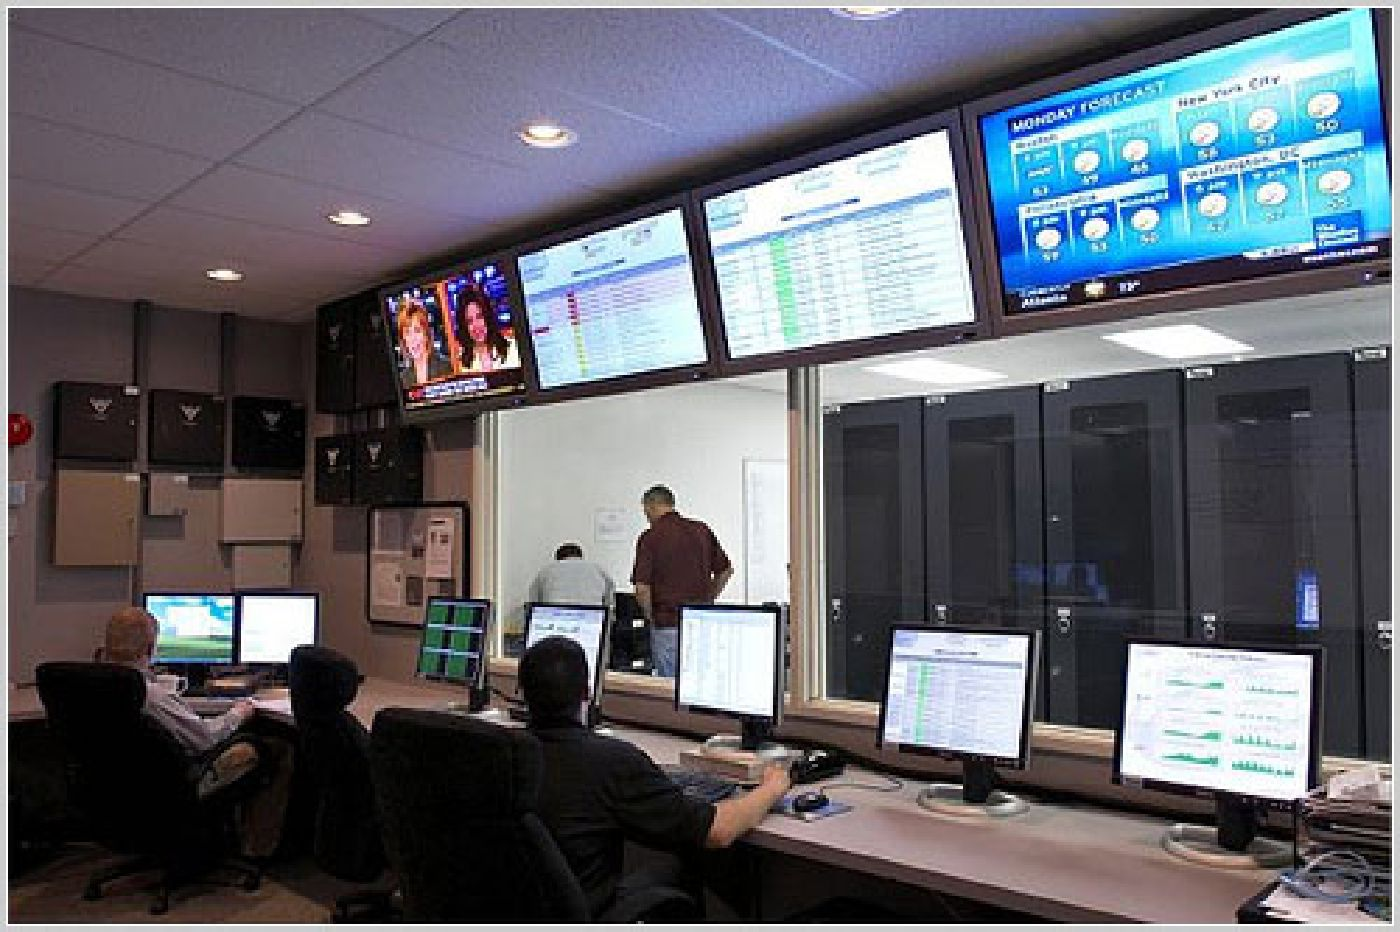 Network Operation Center.